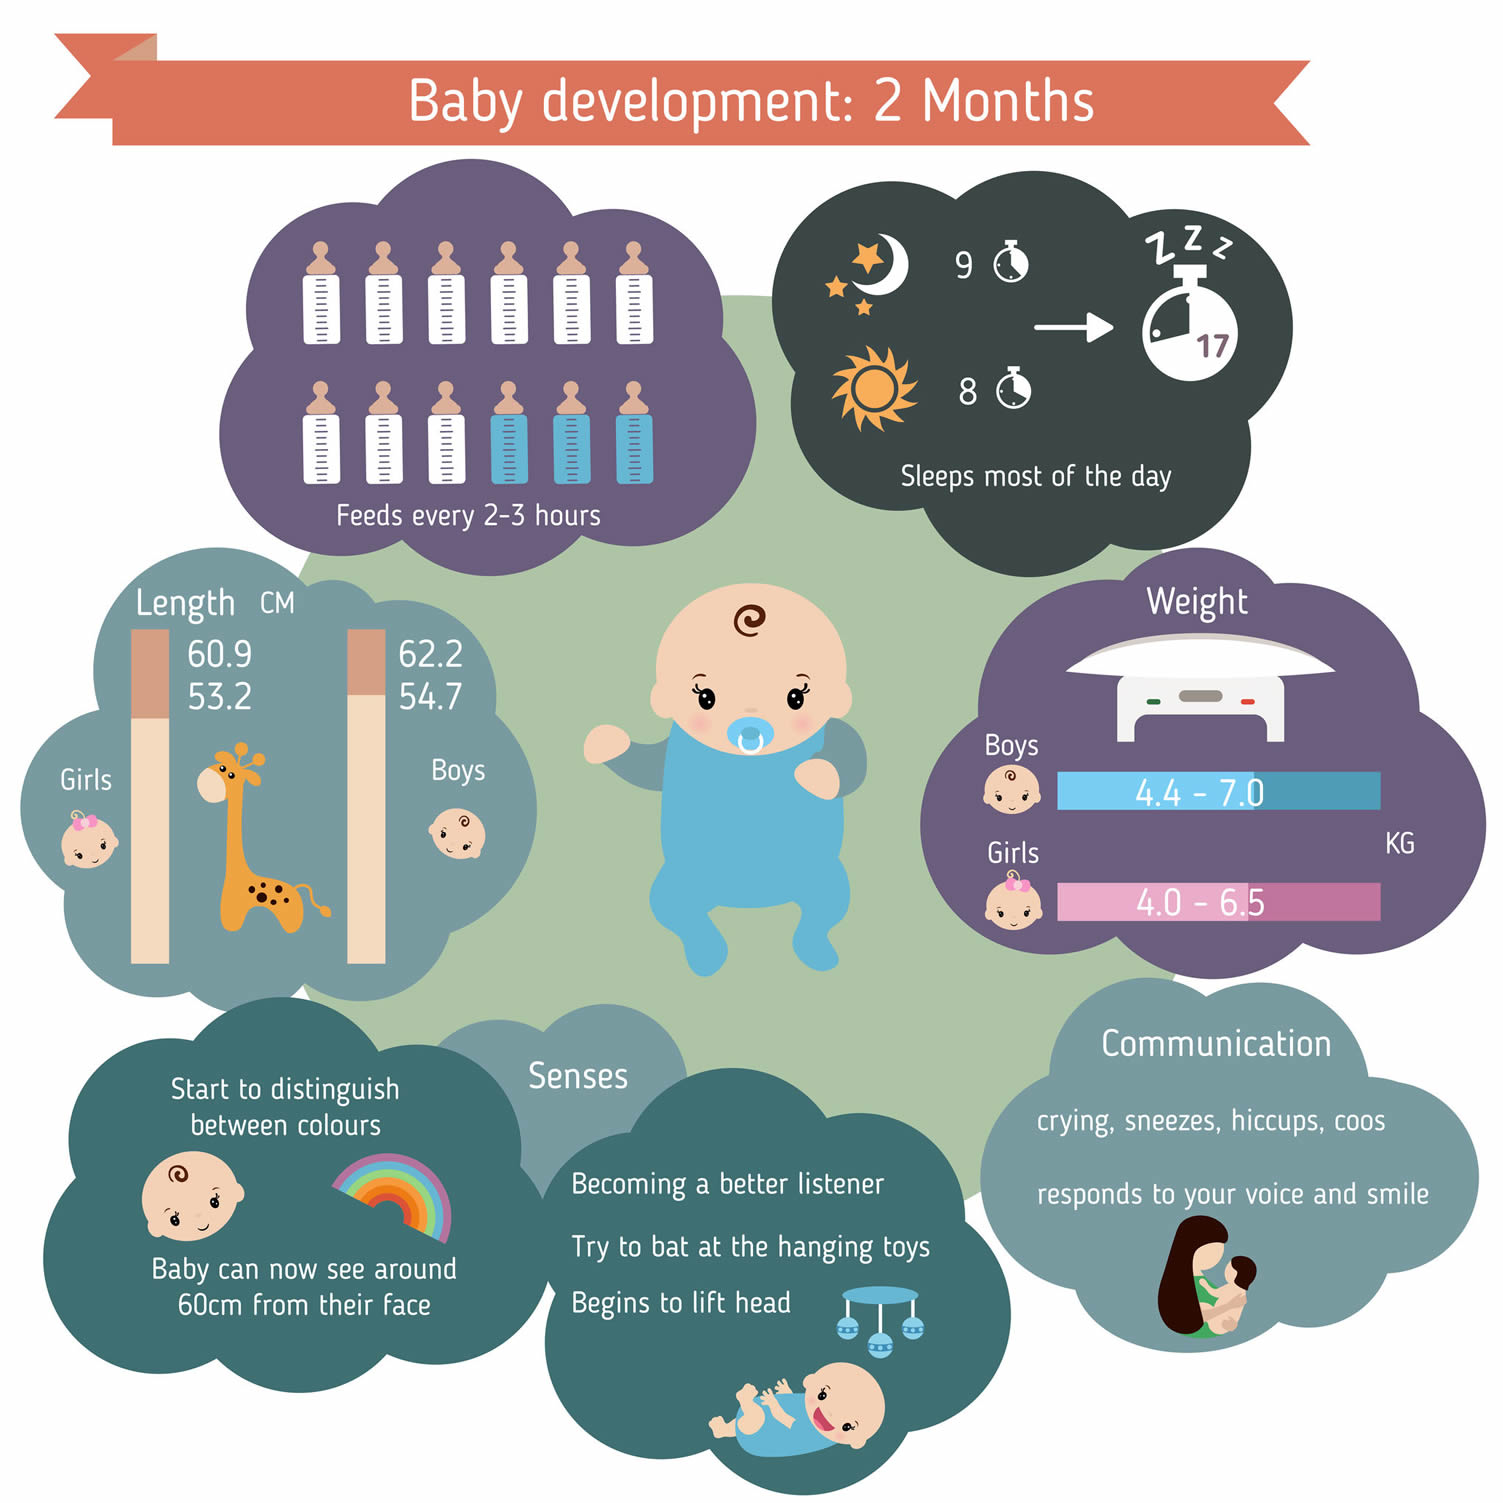 2 month infant care guide